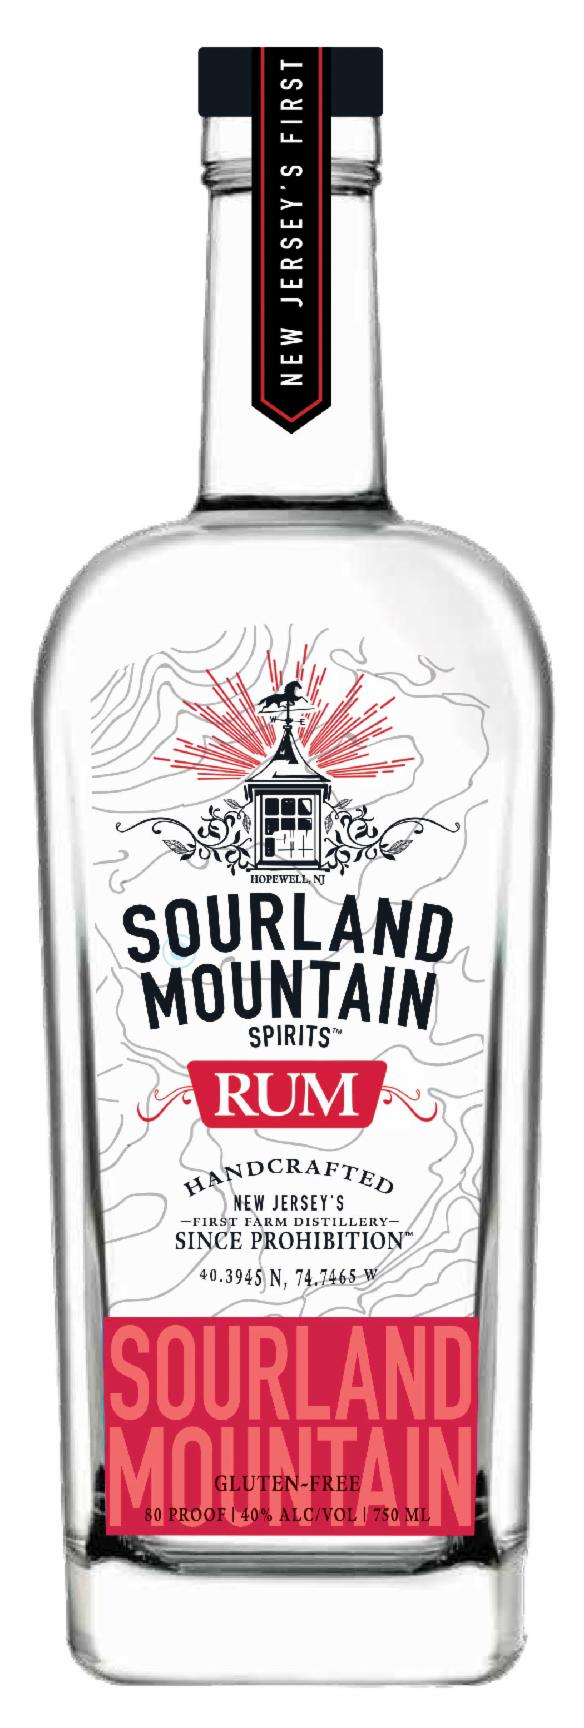 Sourland Mountain Spirits Rum